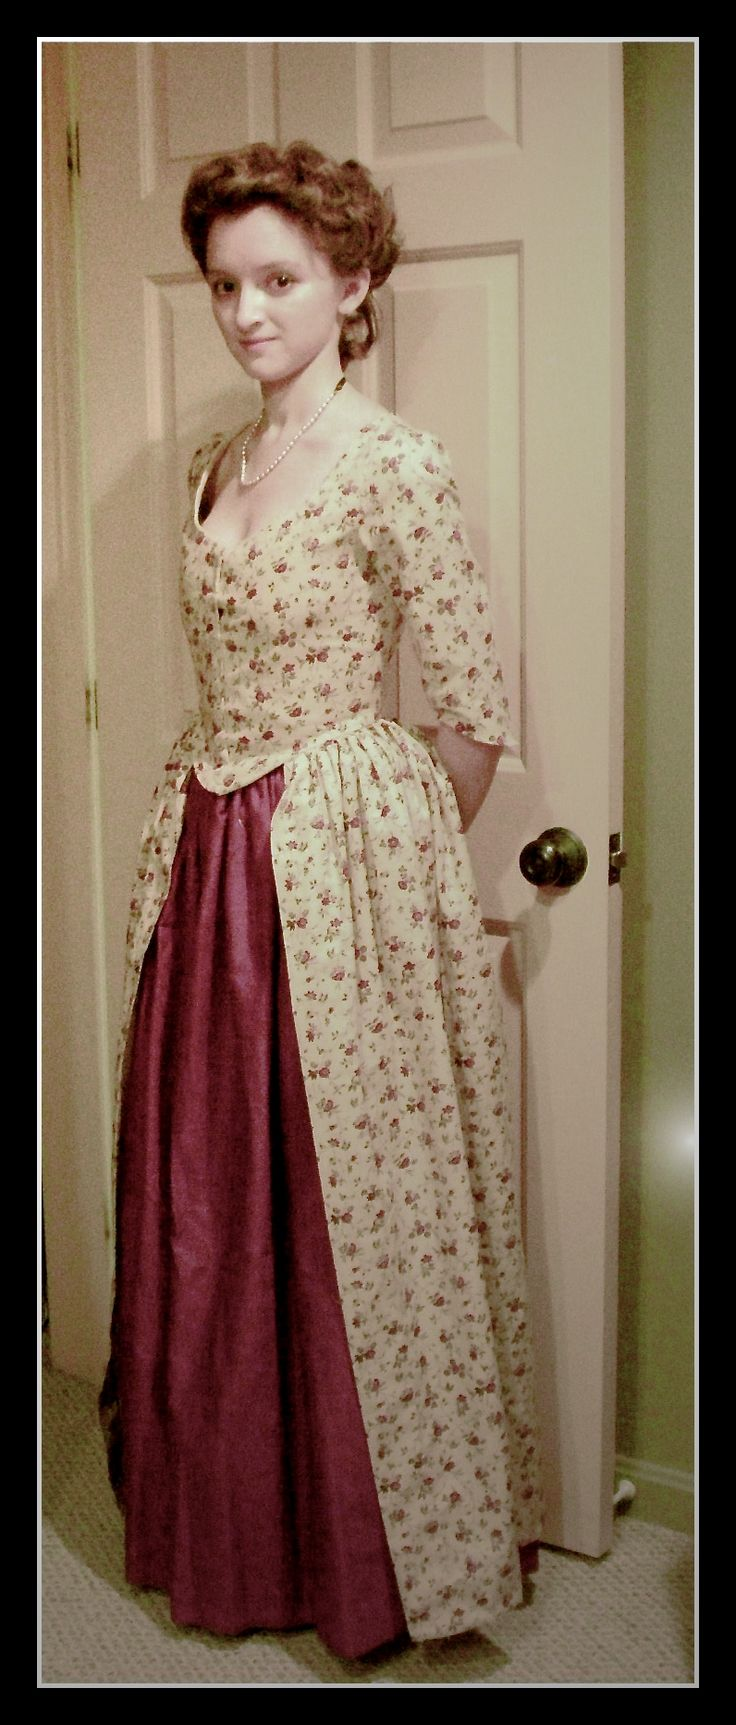 Christmas gown ideas 18th - Christmas Gown Progress By Indifferentcentury Deviantart Com On Deviantart 18th Centurycostume Ideascolonial